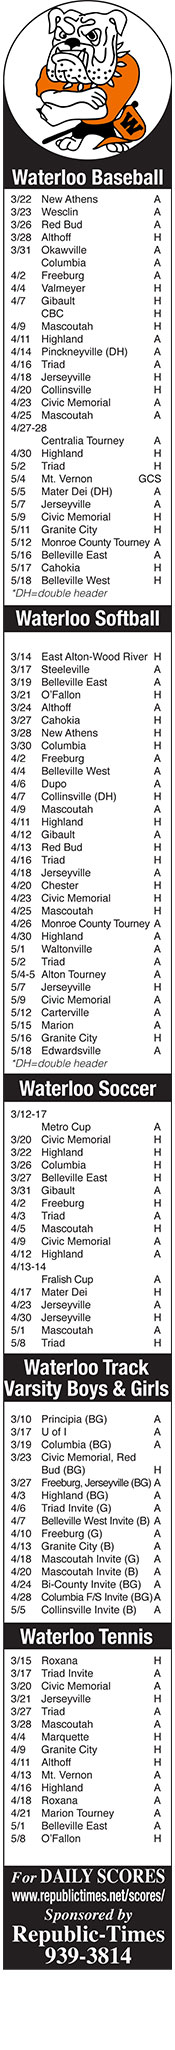 Waterloo Sports Schedules 2017-2018